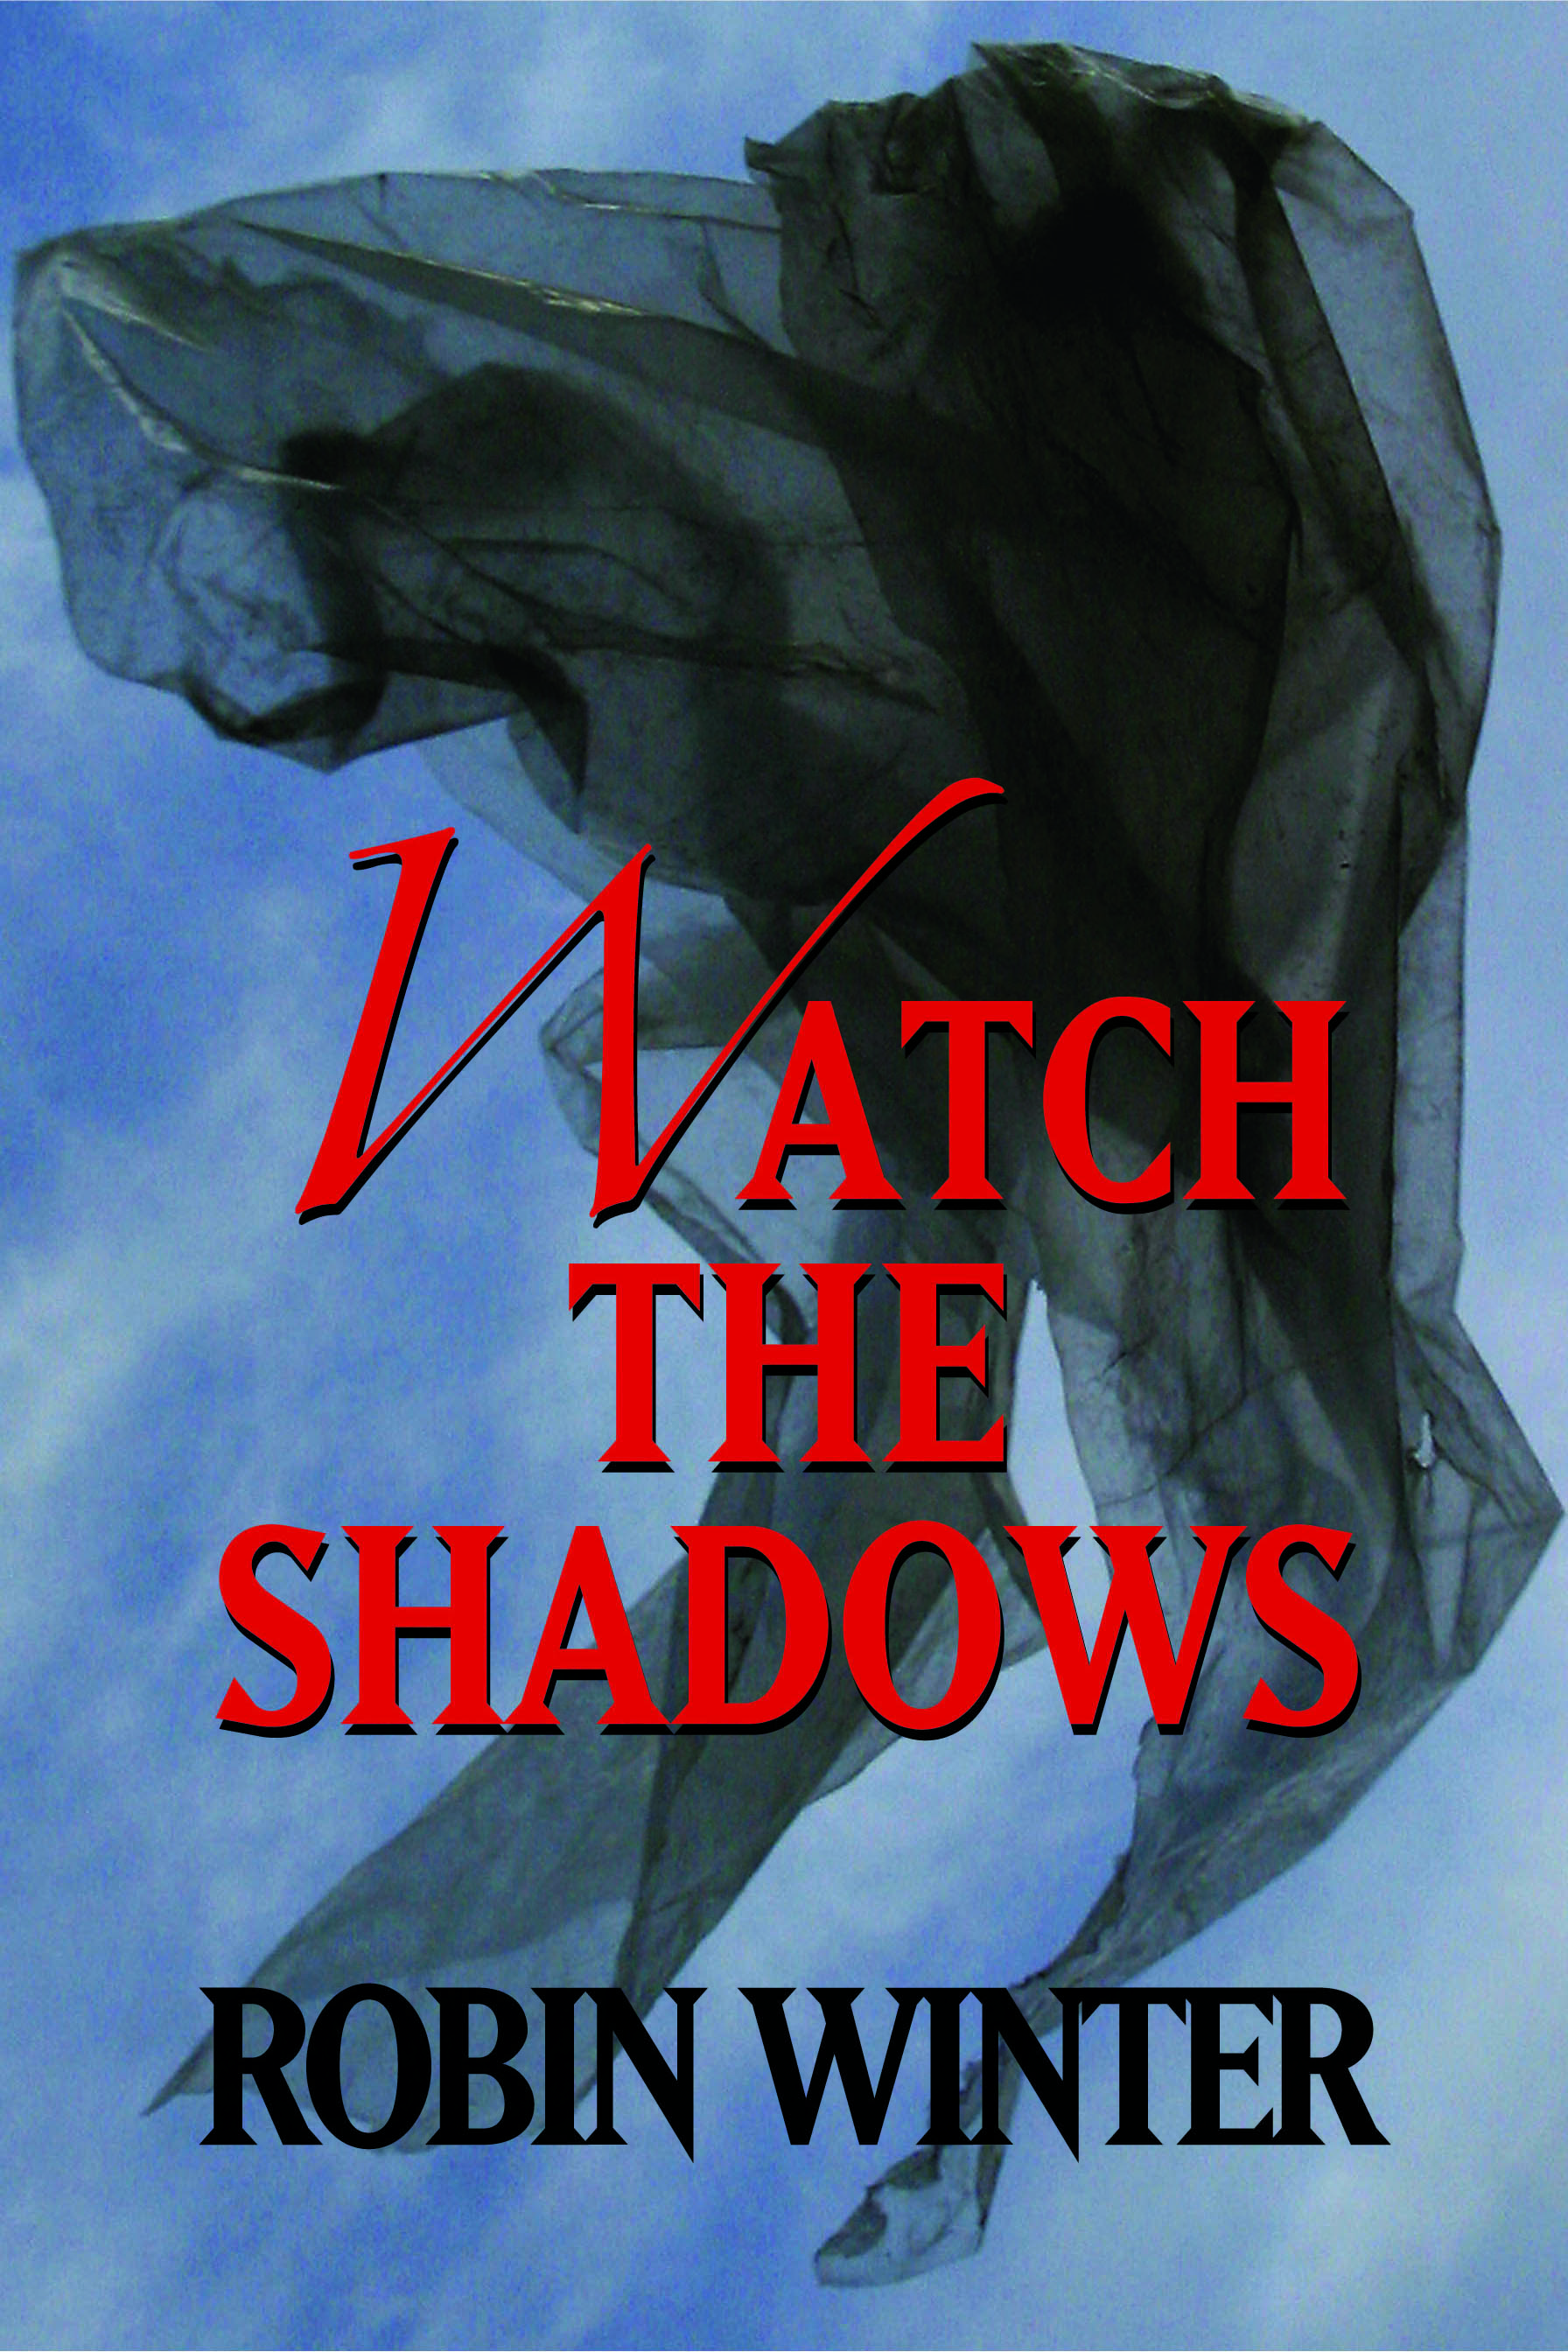 Watch the Shadows Review & Giveaway US/INT 4/15